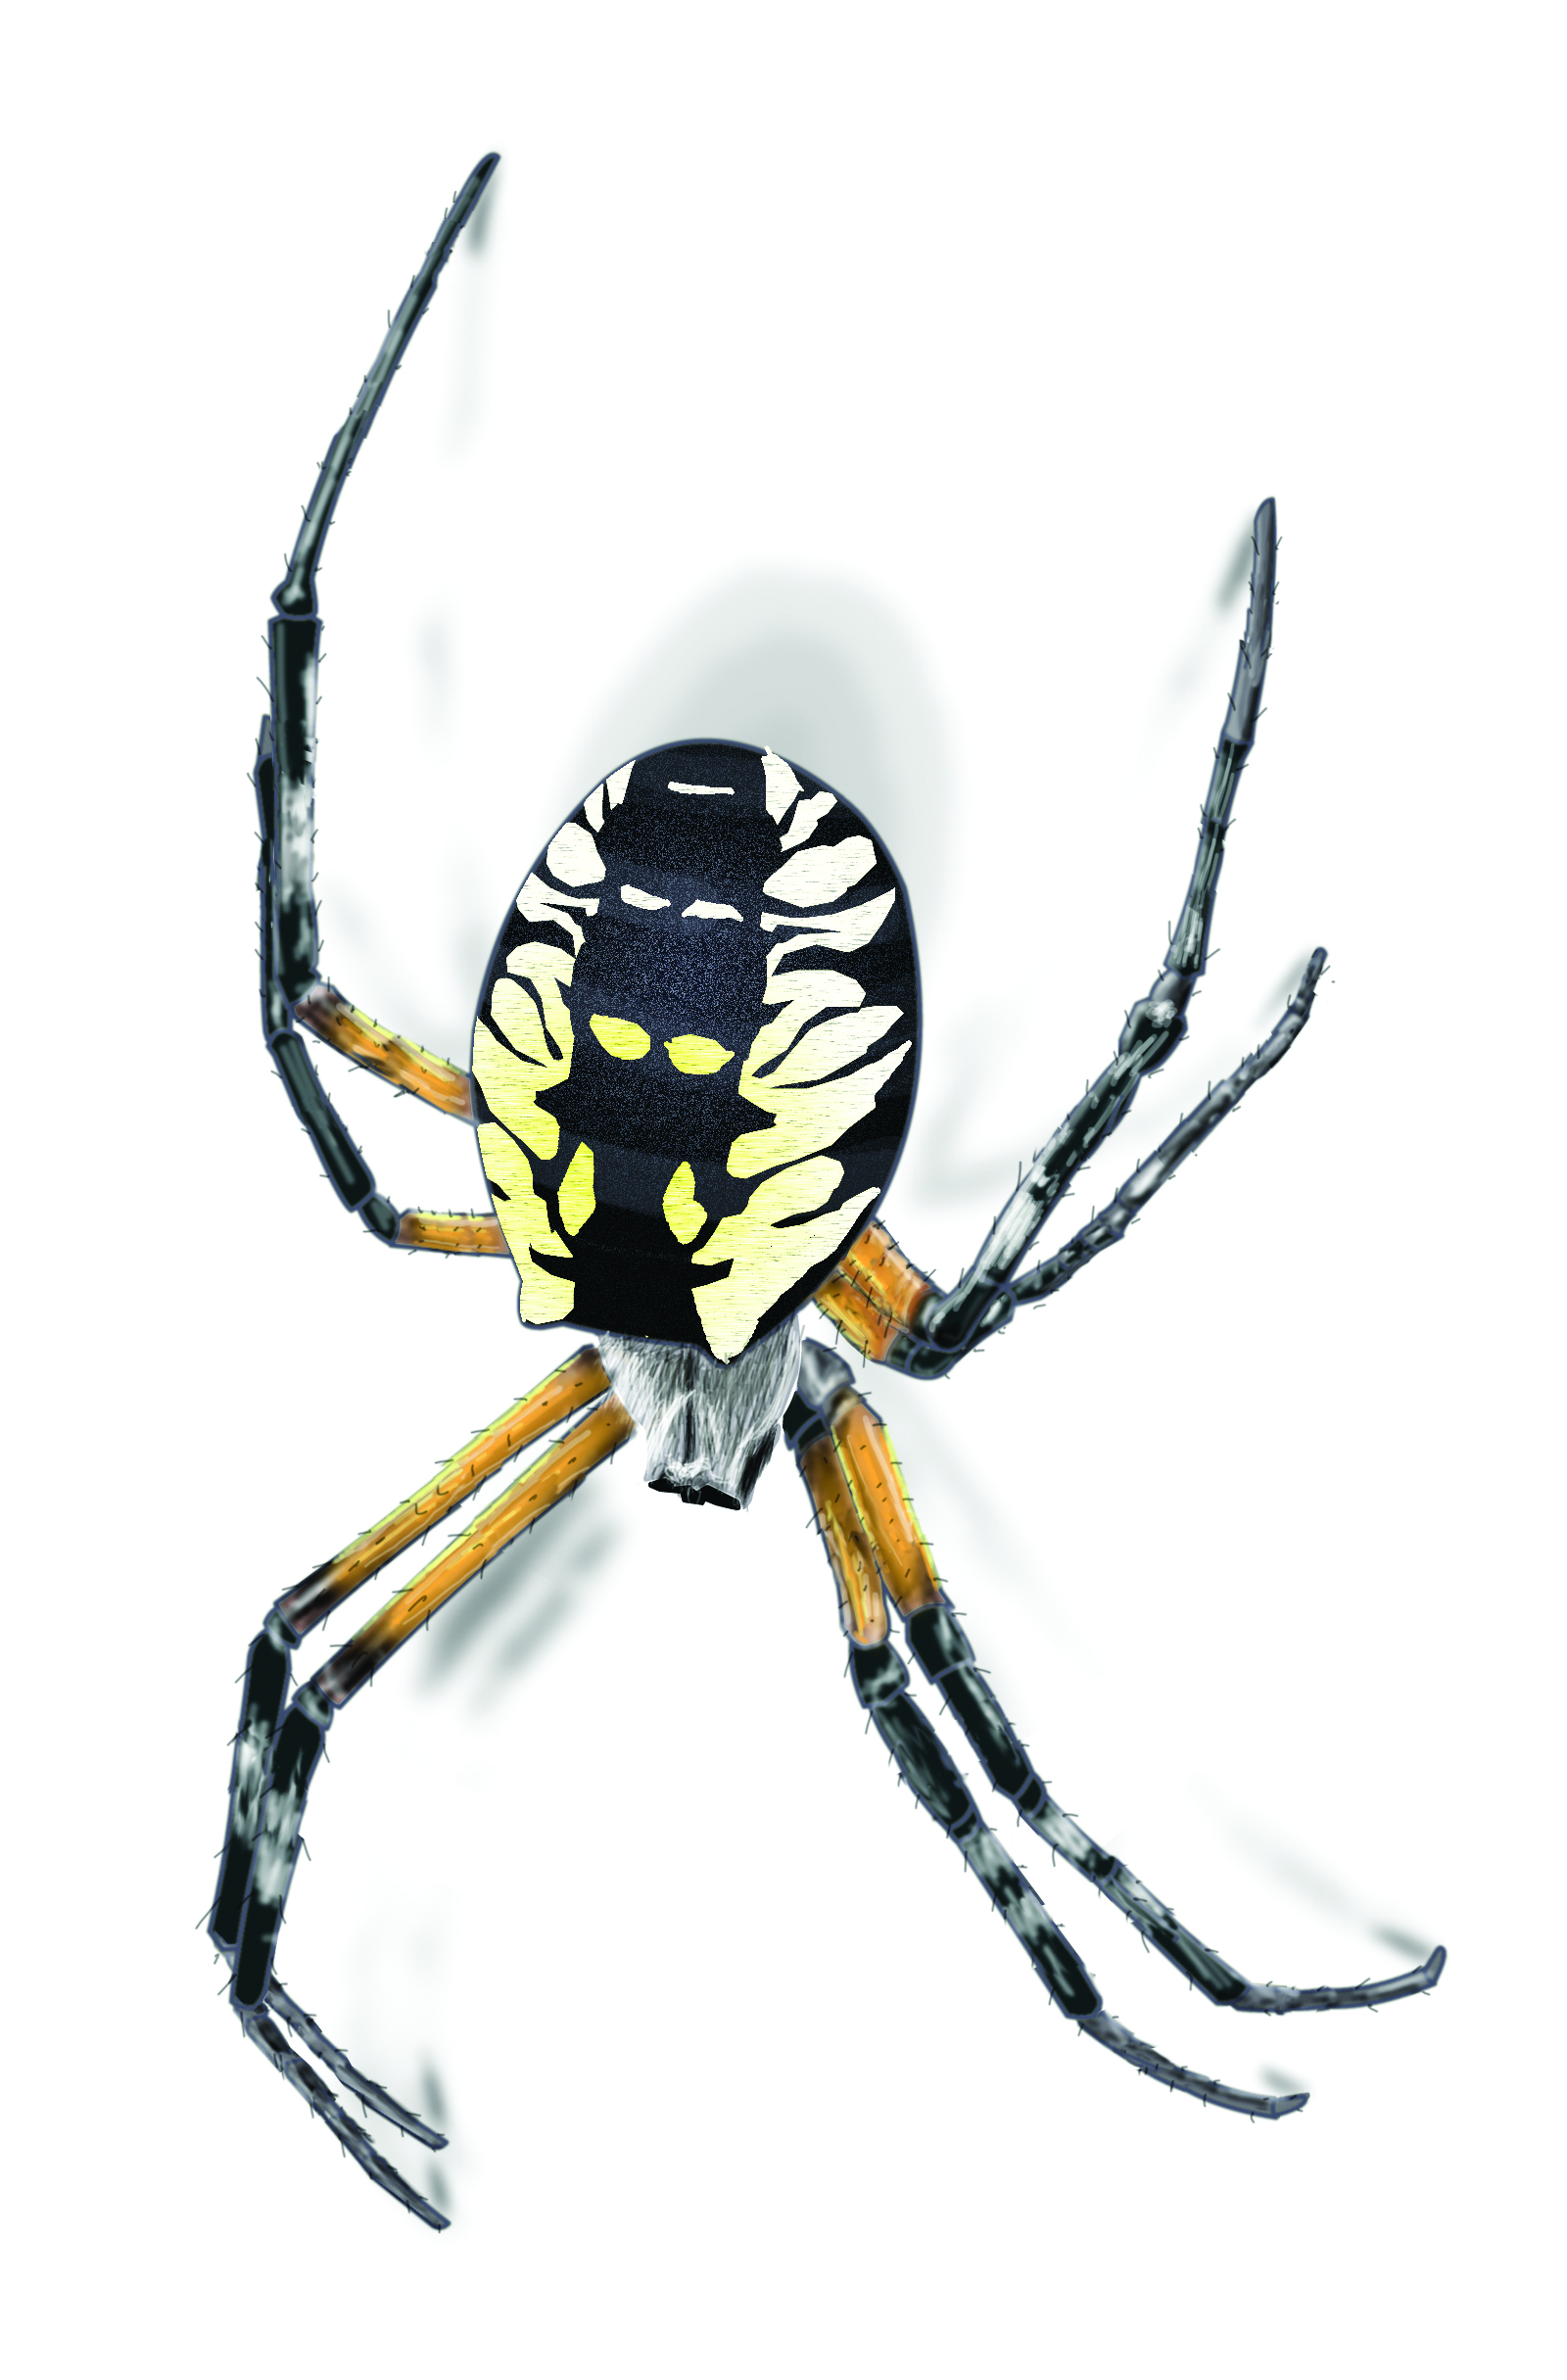 Spider Illustration.